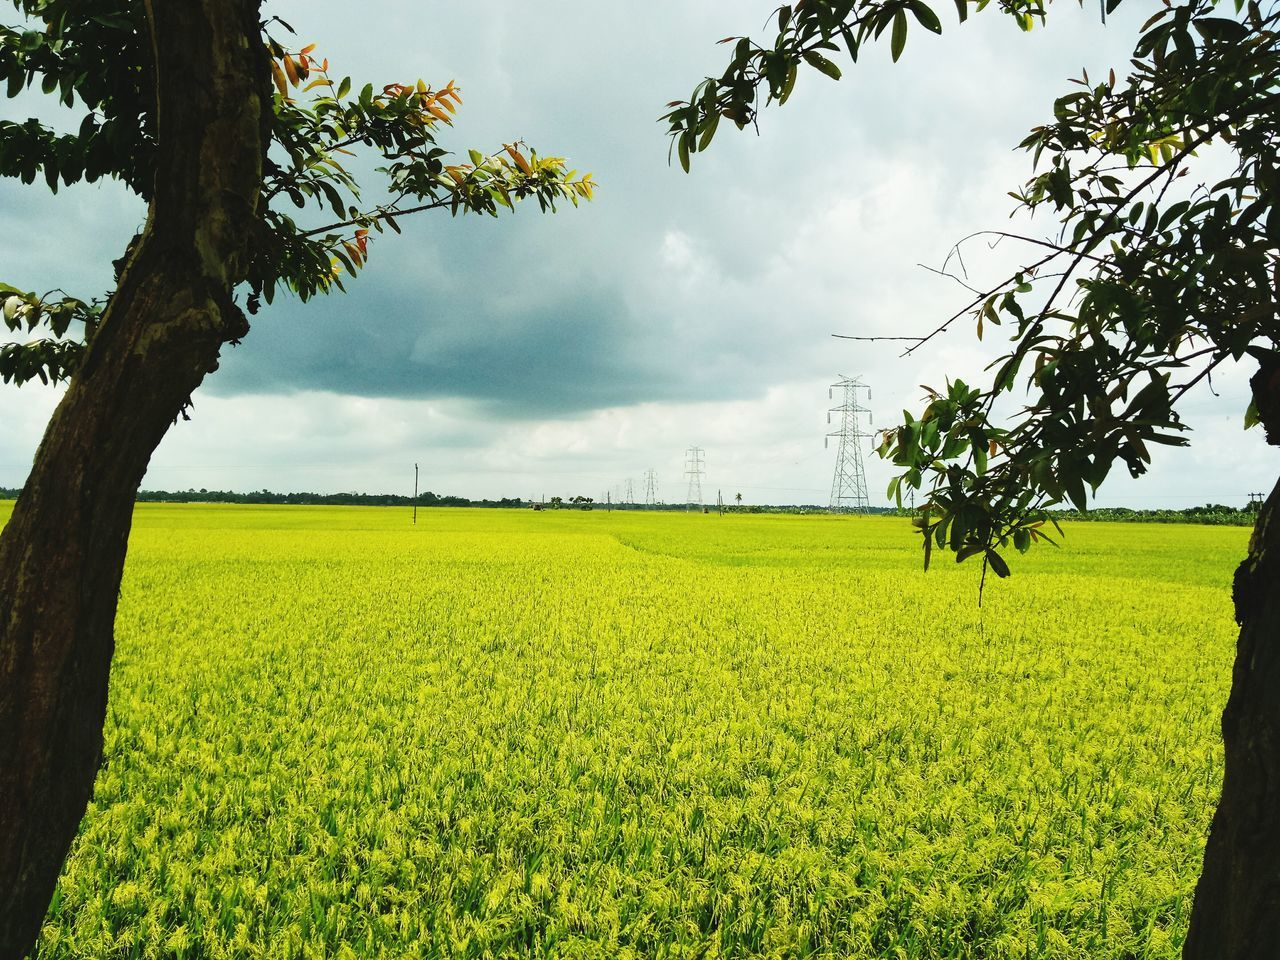 In enviroment.. Tree Agriculture Field Farm Nature Growth Green Color Crop  Rural Scene No People Cereal Plant Day Landscape Social Issues Outdoors Cloud - Sky Cultivated Food Beauty In Nature Irrigation Equipment Nature On Your Doorstep Natural Beauty Nature Photography